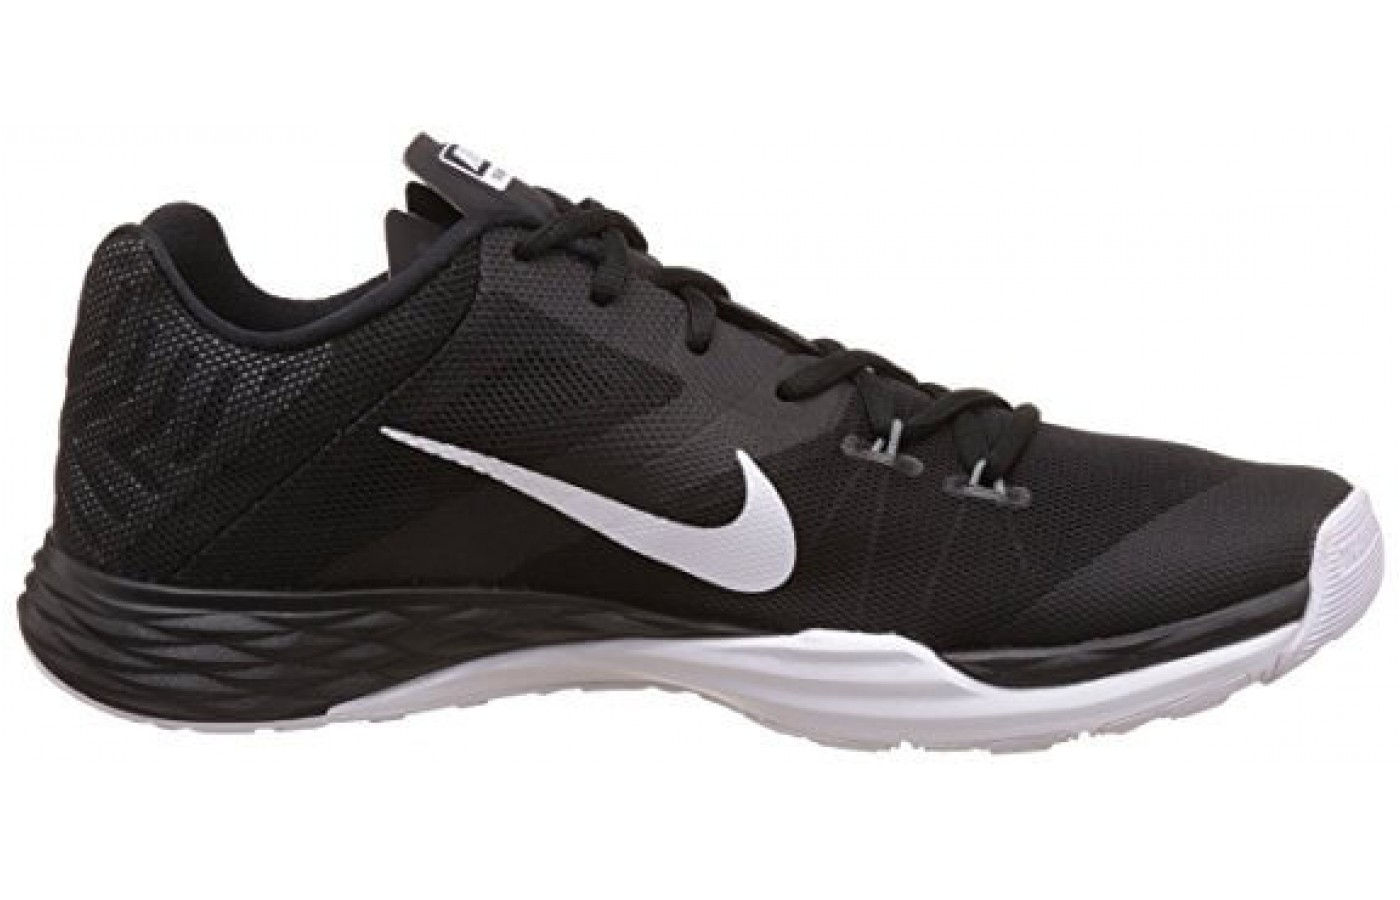 The Nike Prime Iron DF SP side view